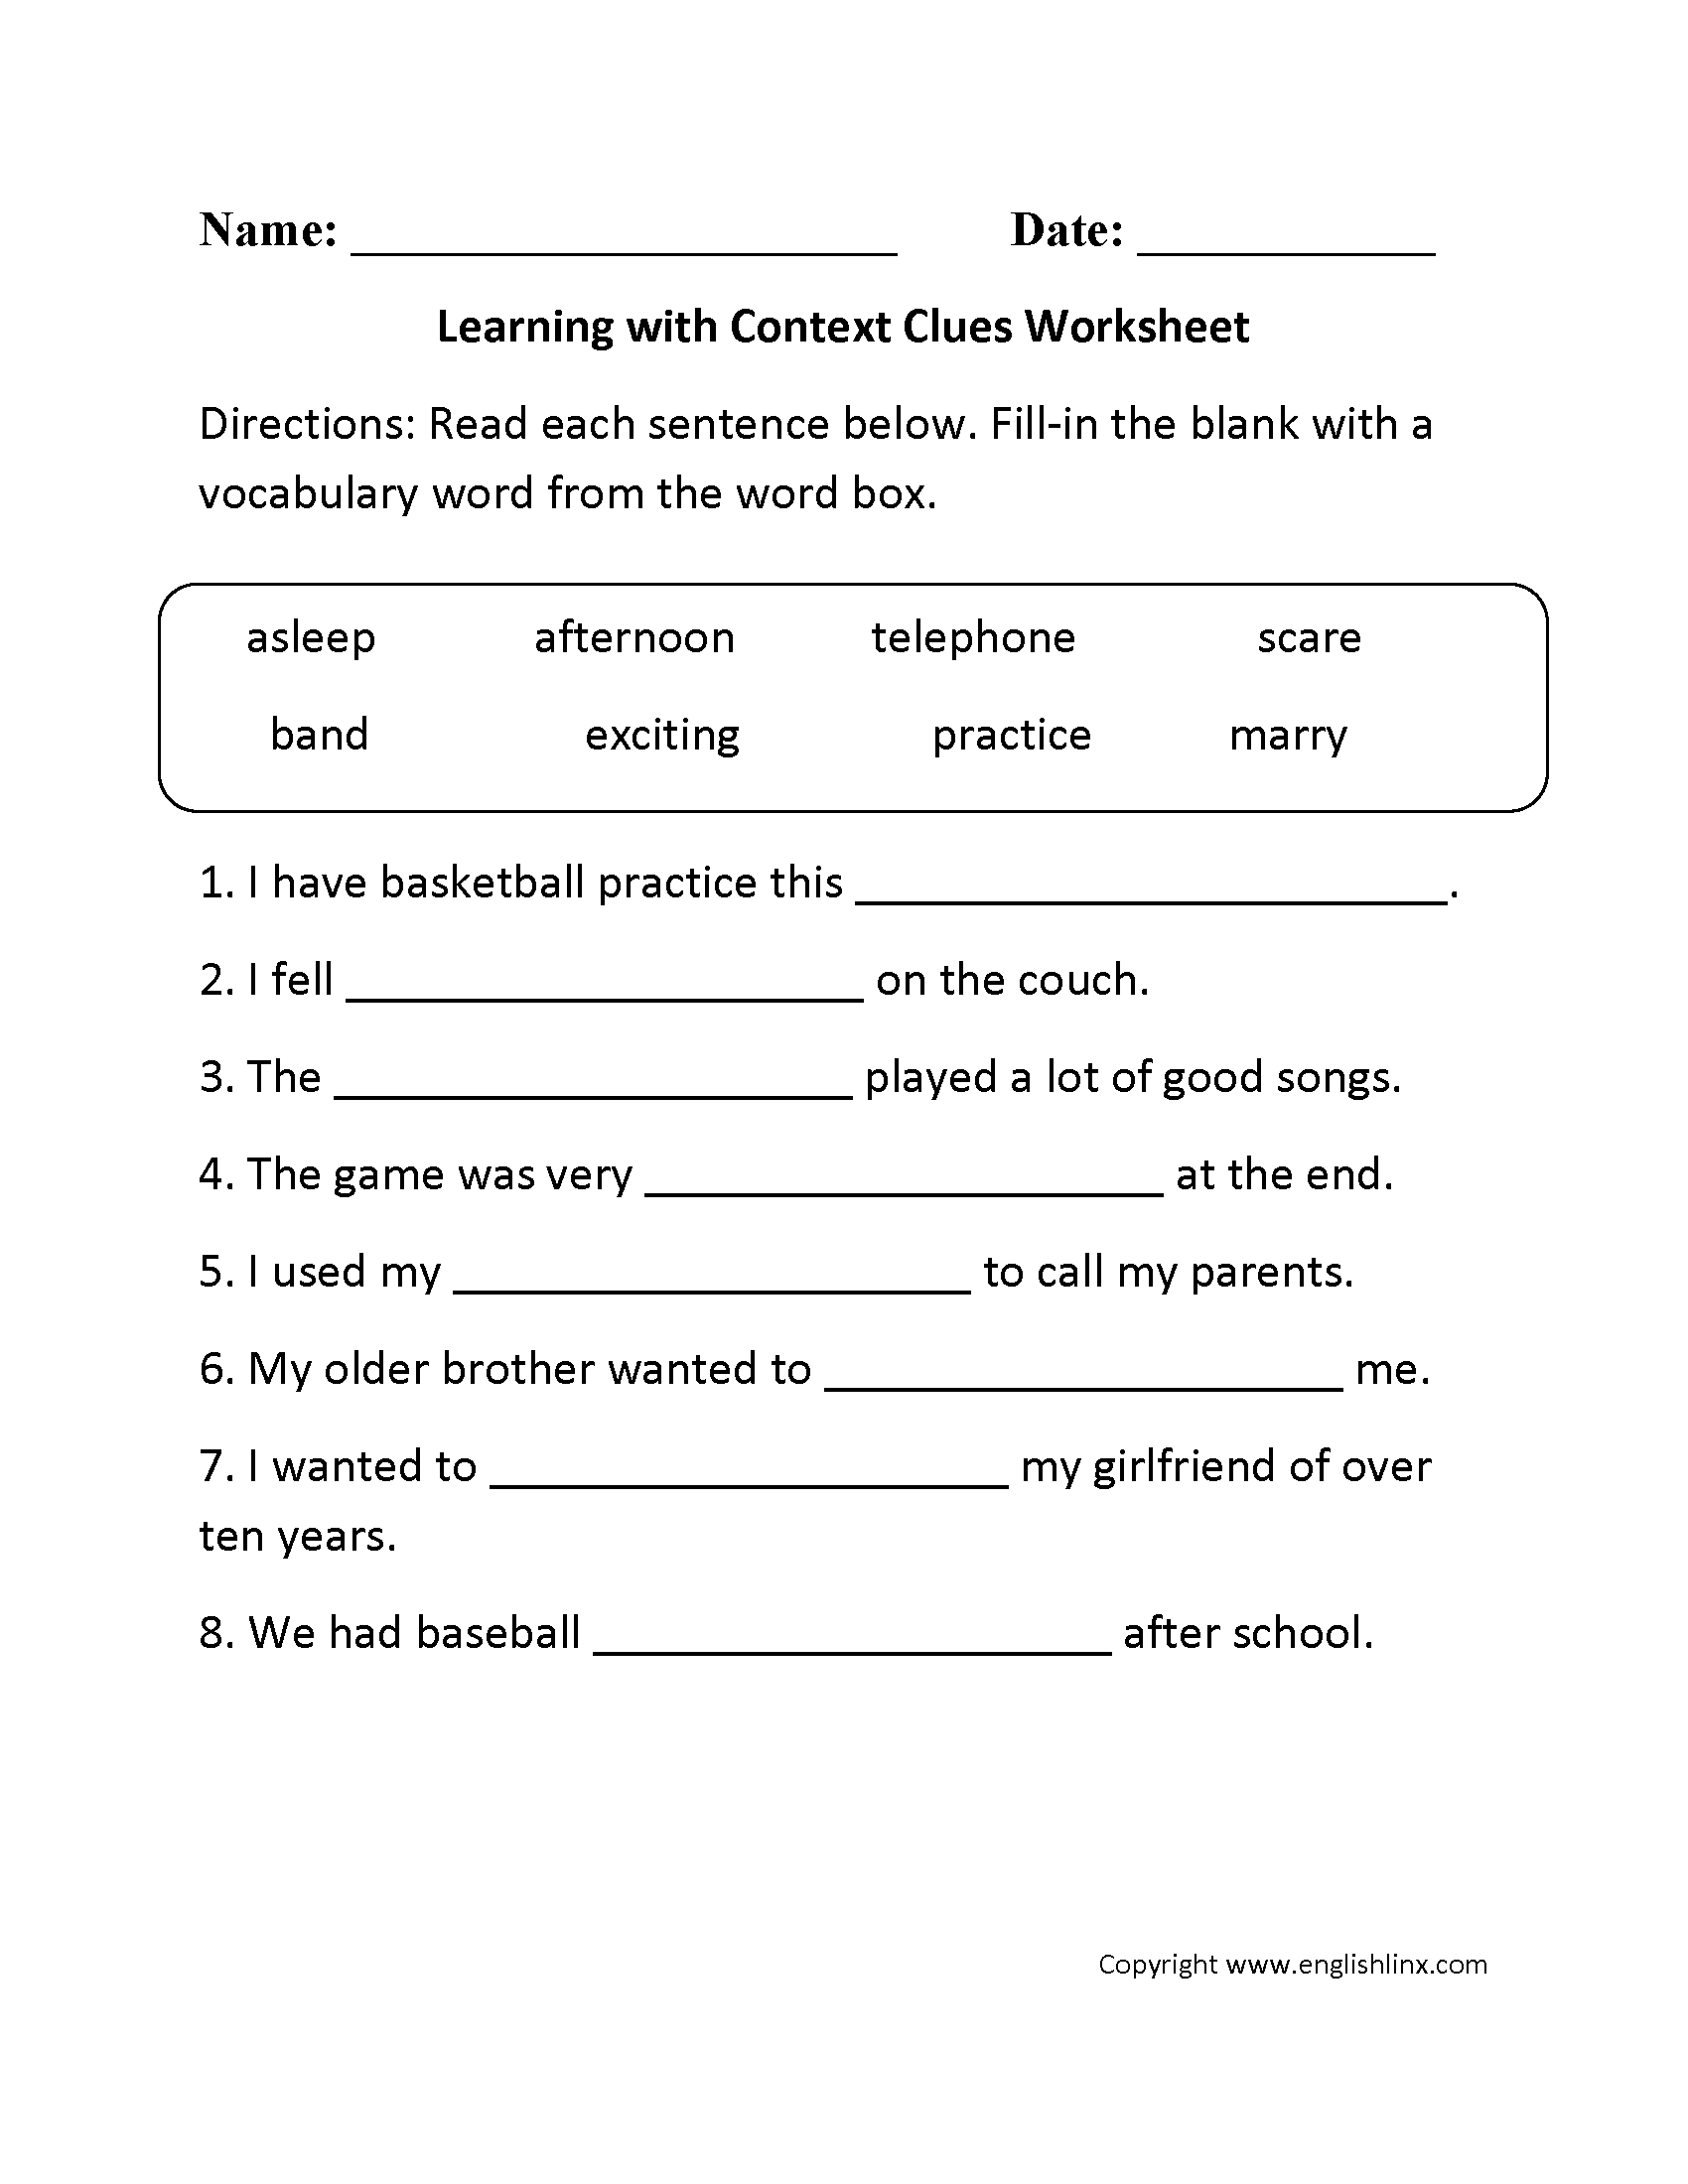 Reading Worksheets – Context Clues Worksheets 2nd Grade